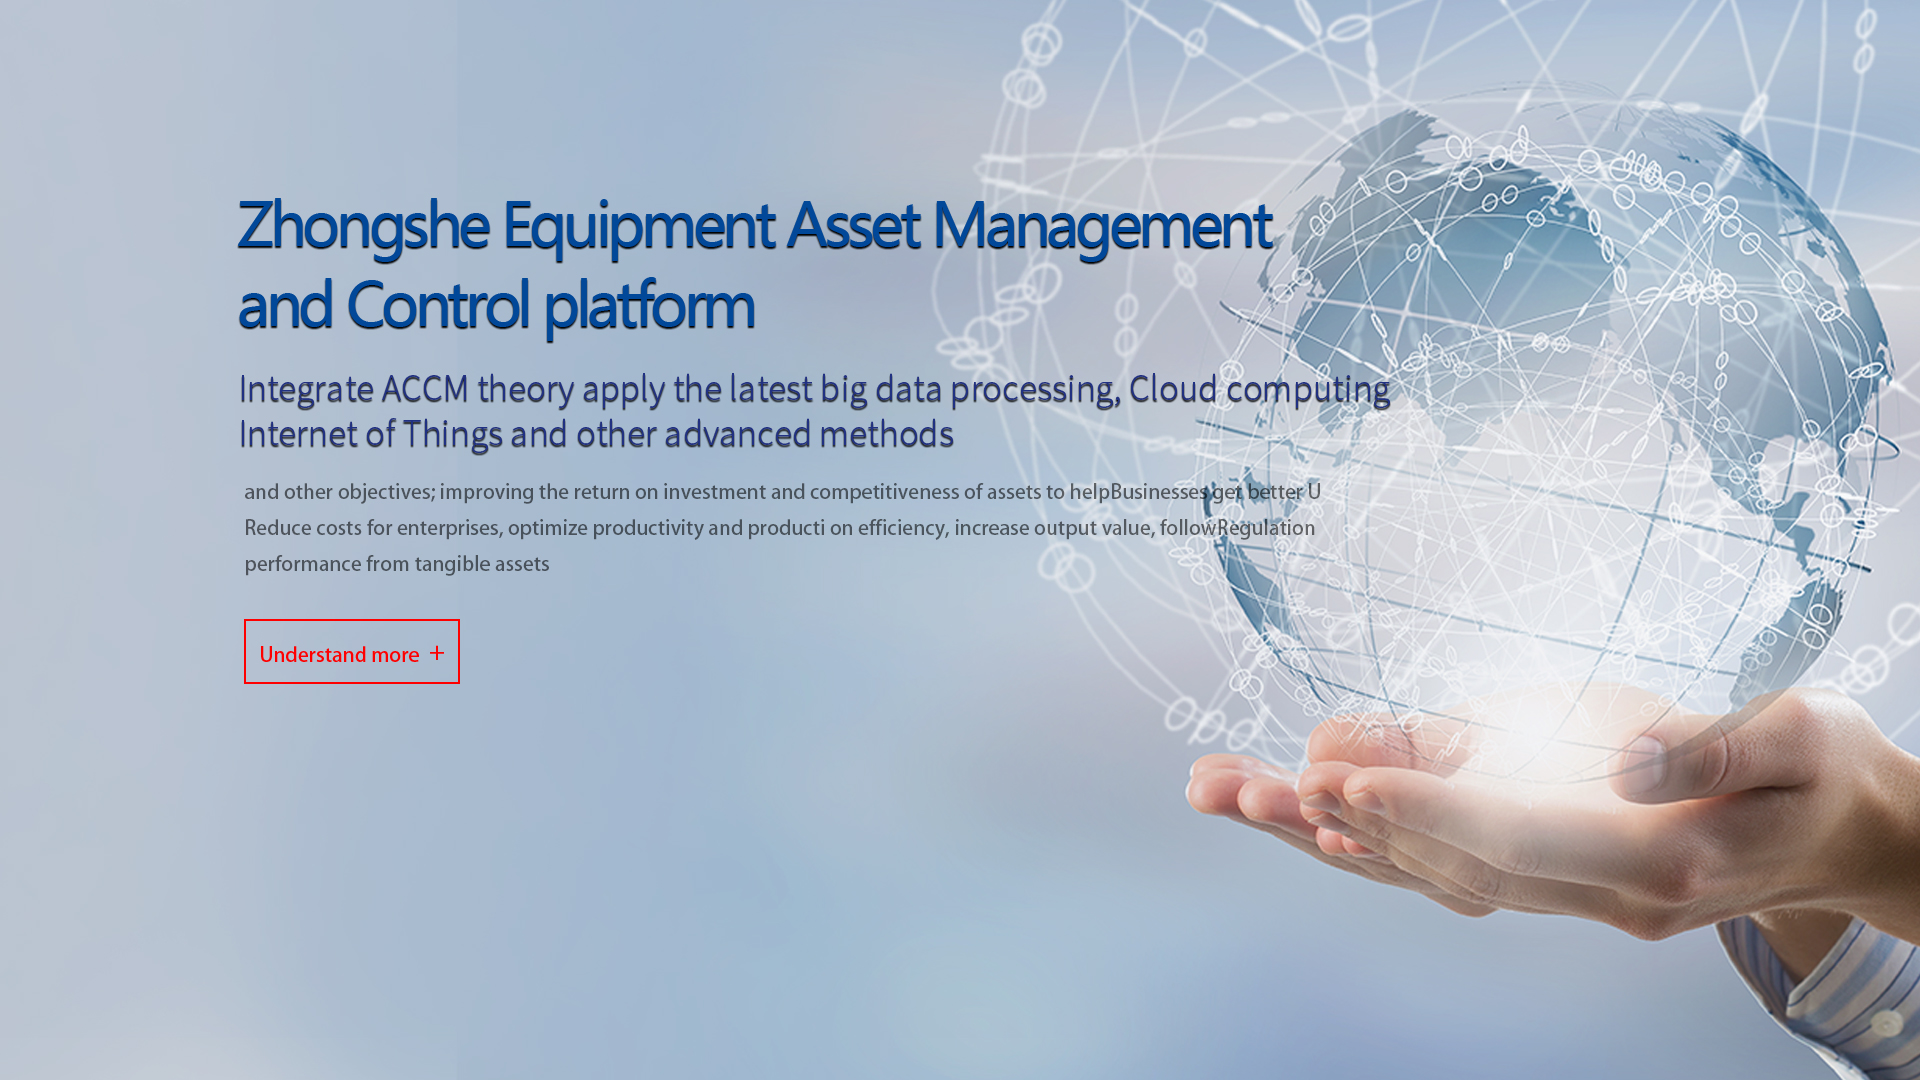 CMEC Equipment Asset Management and Control Platform